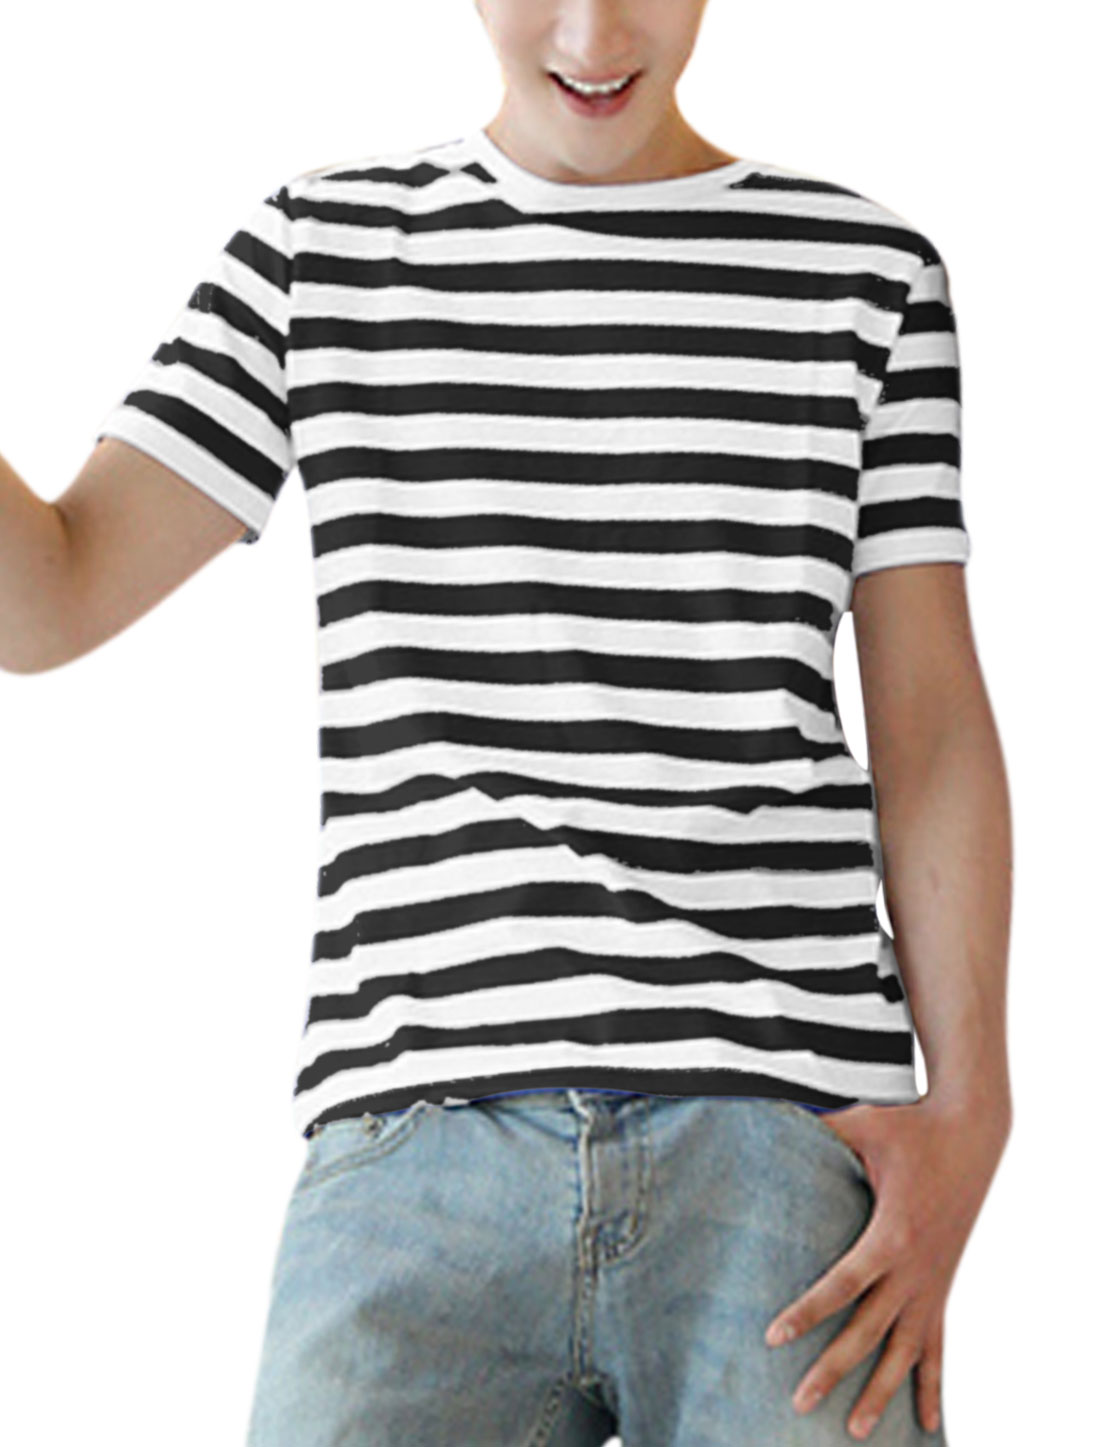 Men Stripes Pattern Short Sleeve Summer Fit Casual Tee Shirt Black White S